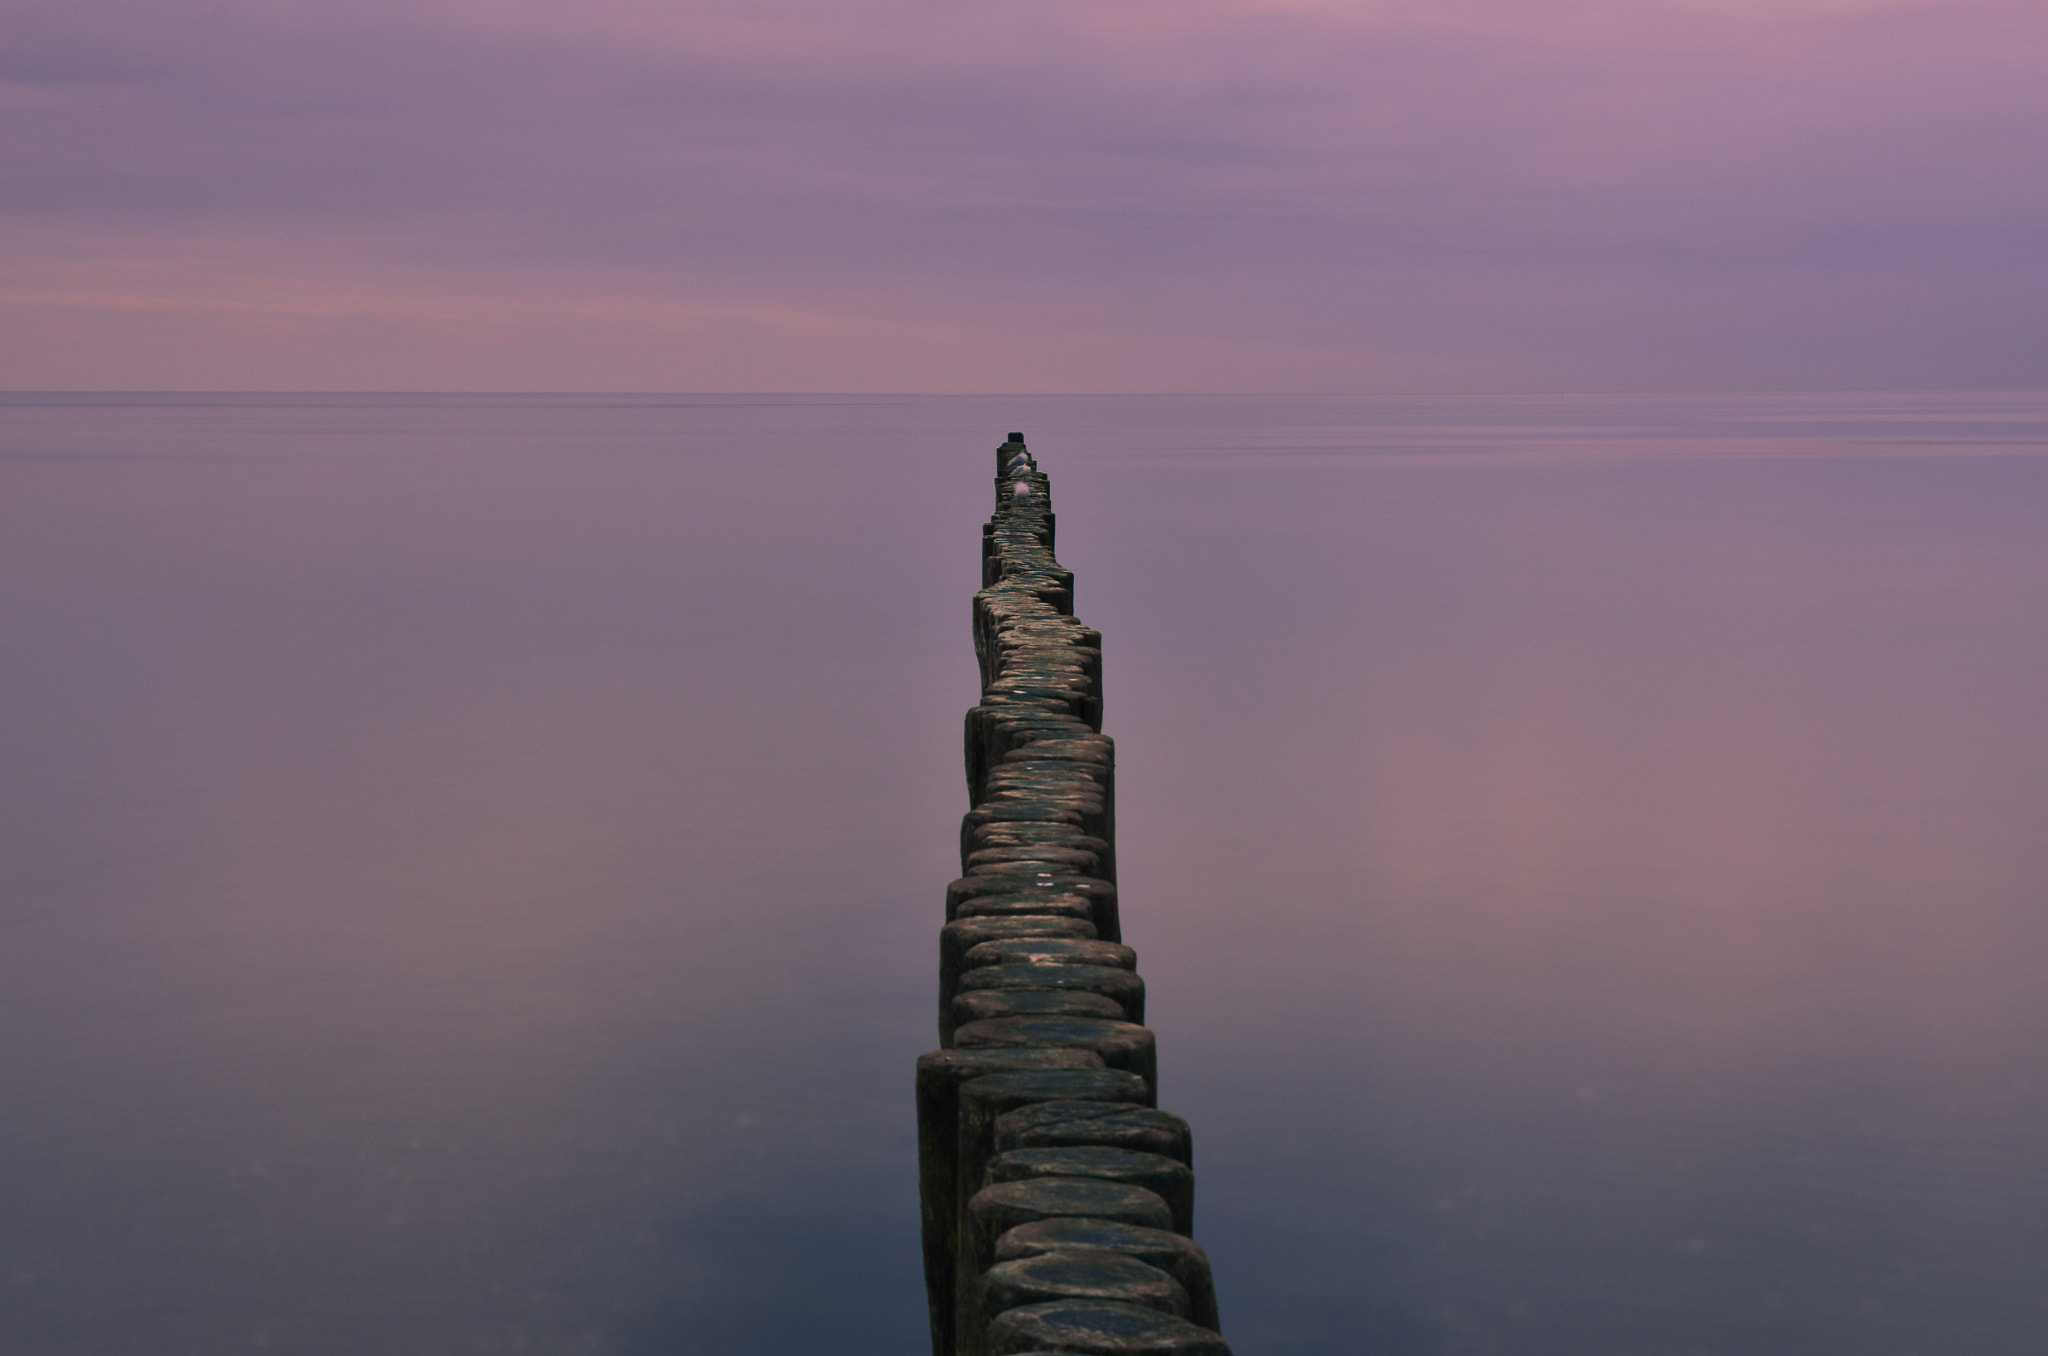 Photograph To infinity by Jan Hausding on 500px